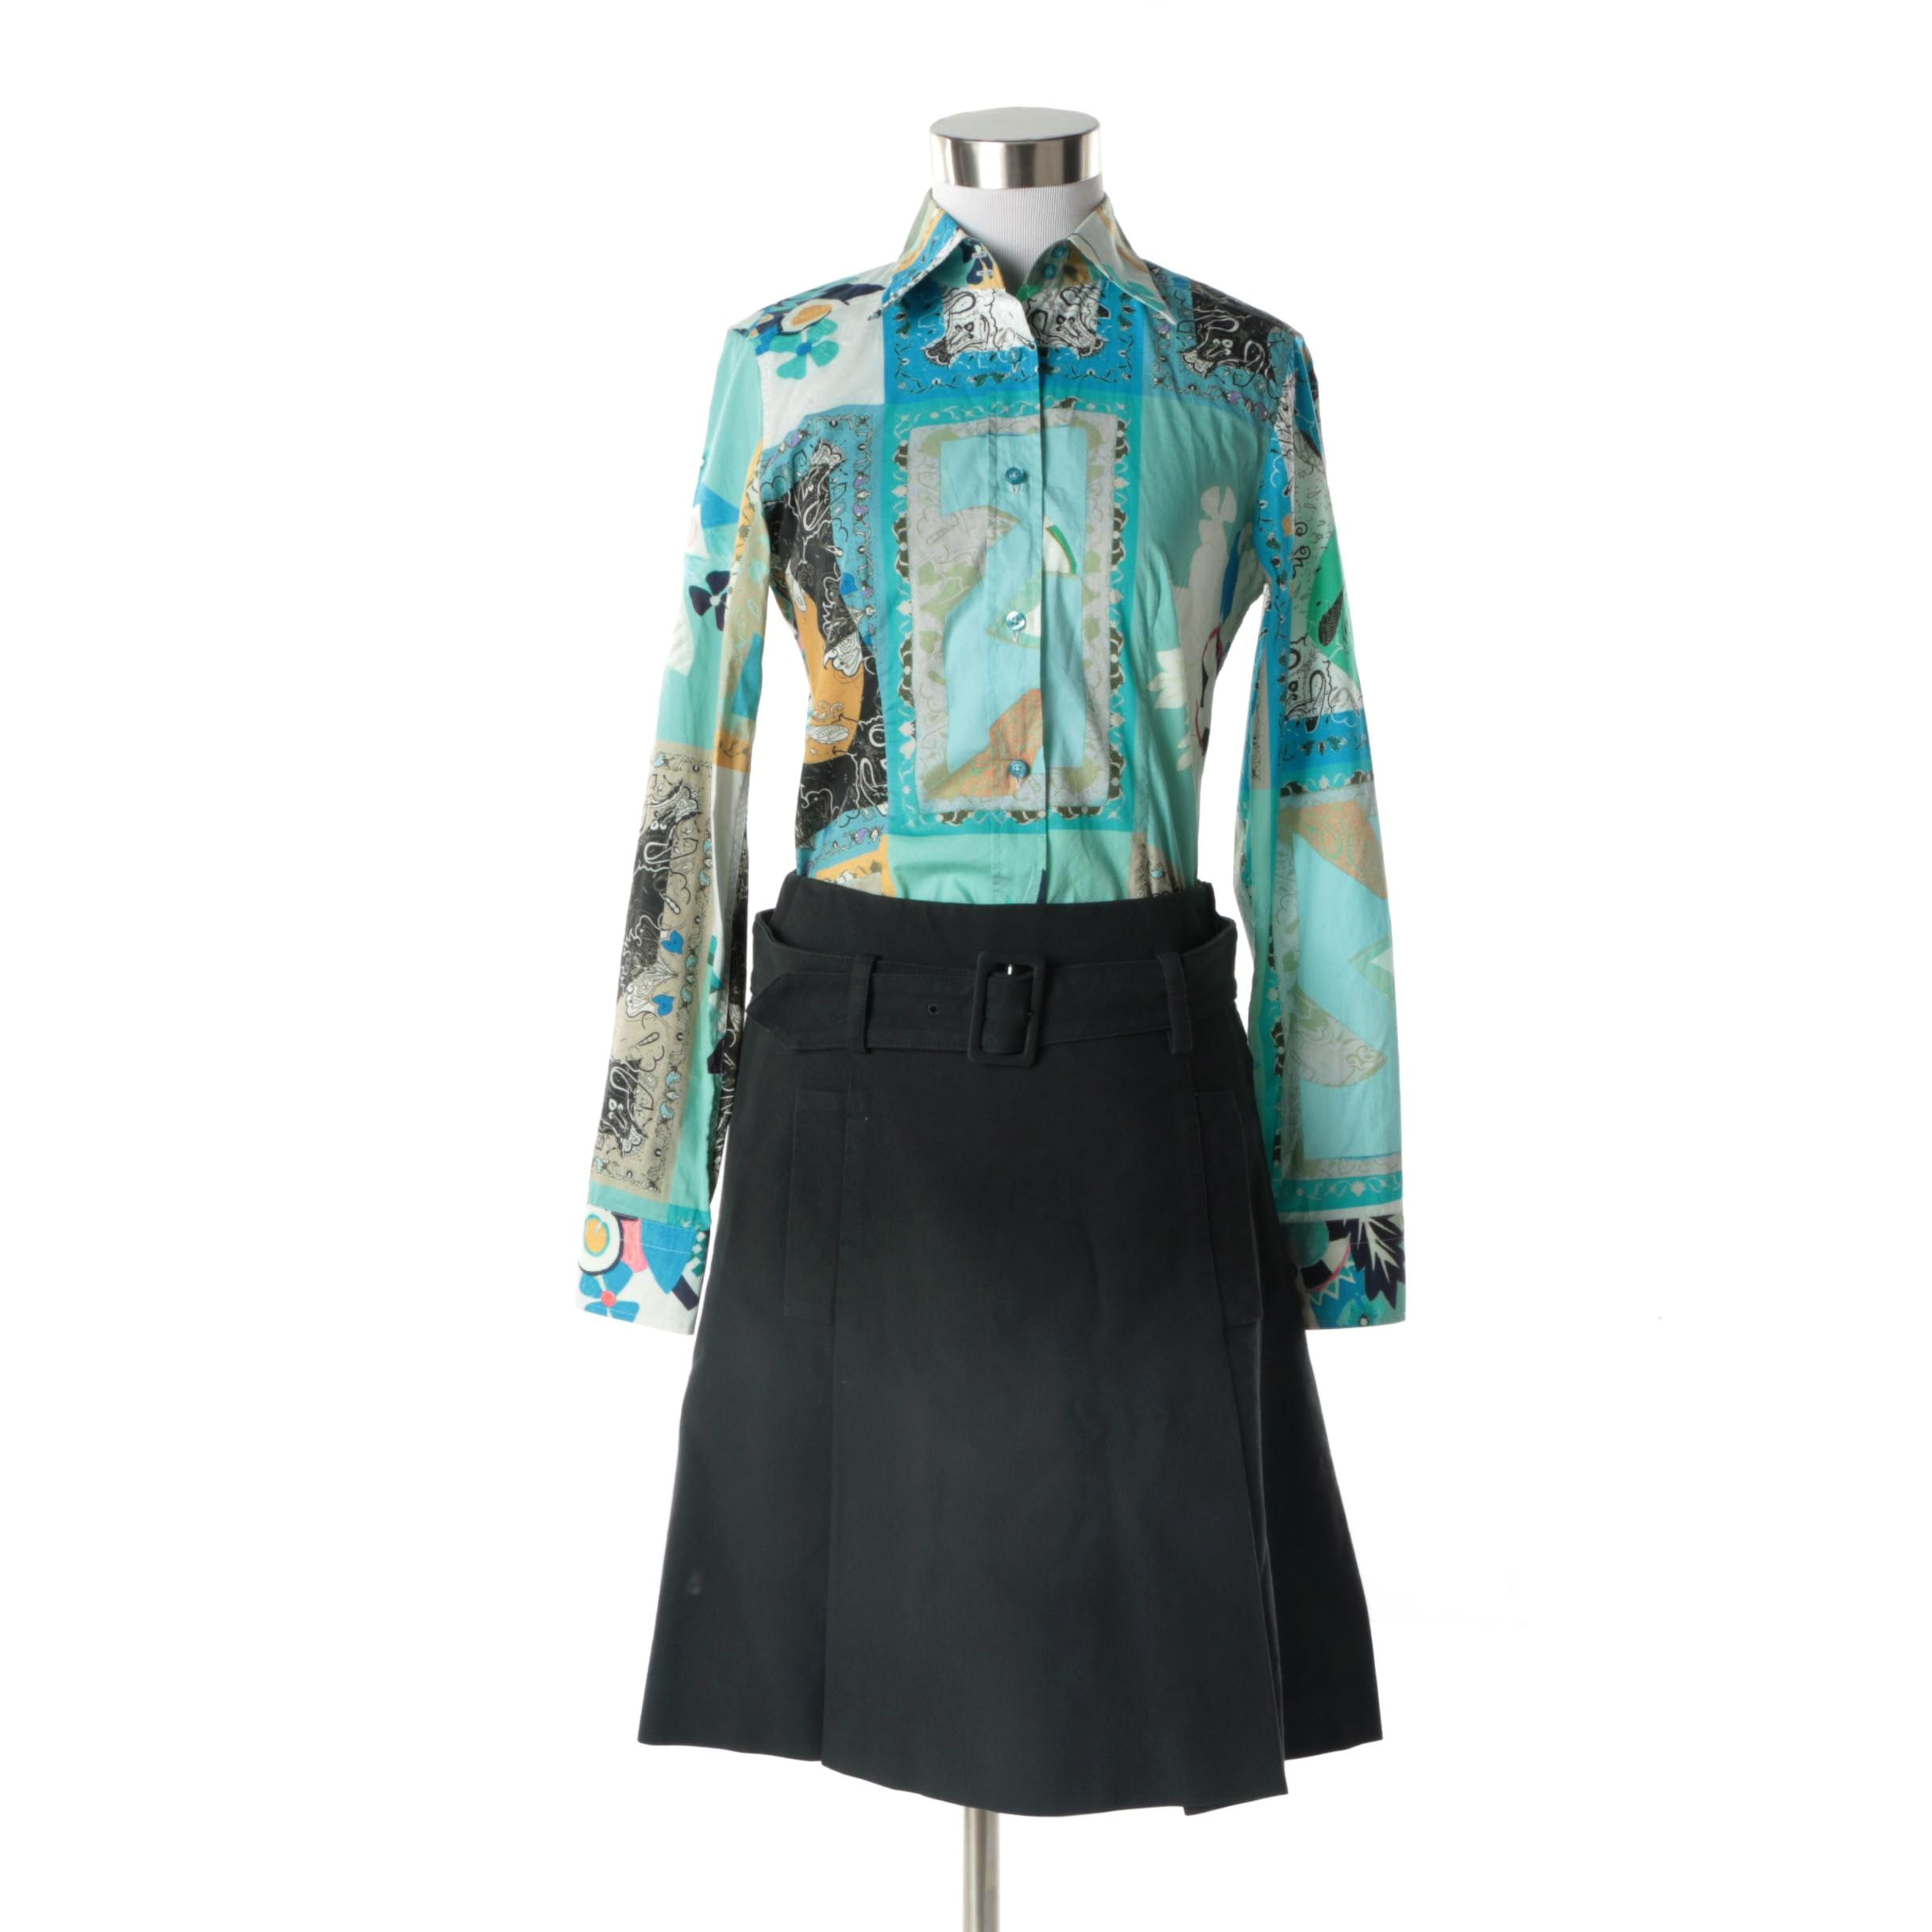 Etro Multicolor Print Blouse and Miu Miu Black Skirt, Made in Italy